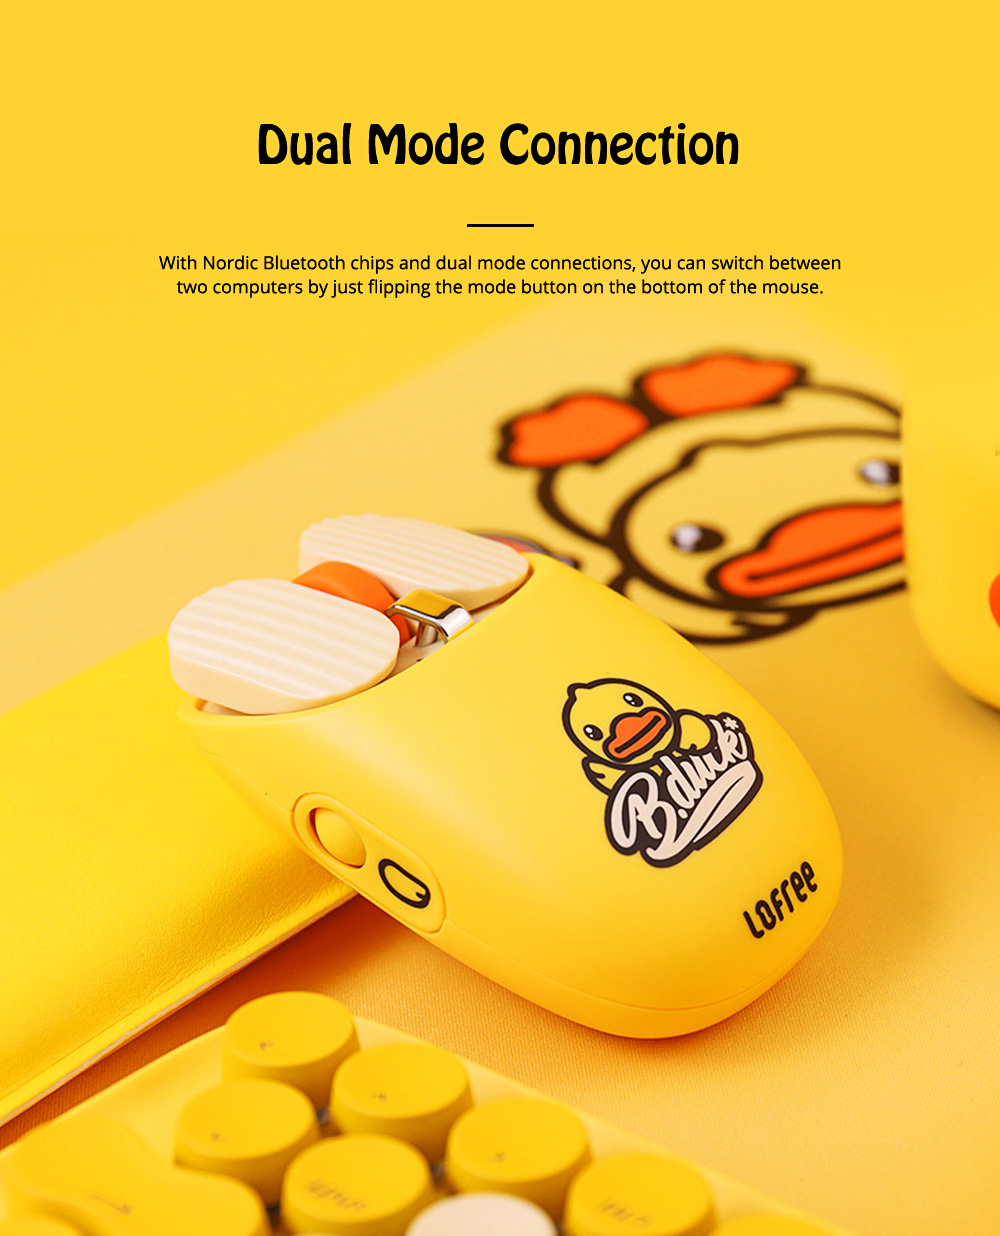 LOFREE Dual Mode Yellow Duck Bluetooth Mouse with 5-level Adjustable DPI Up to 3600, Yellow Duck Cartoon Wireless Mouse 4